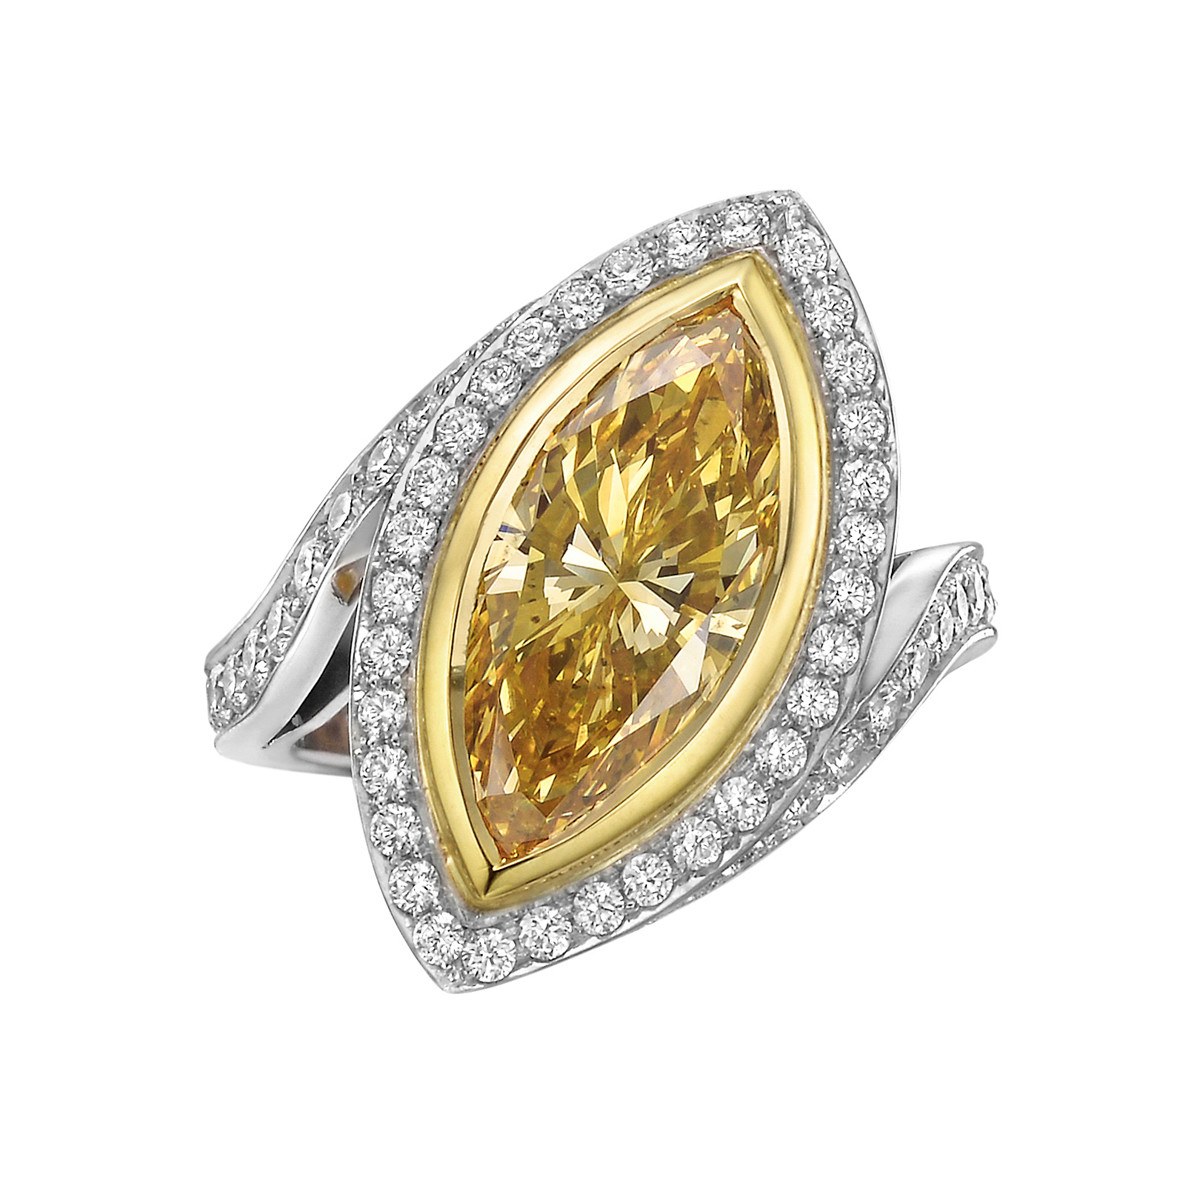 3.39 Carat Fancy Intense Orange-Yellow Diamond Ring